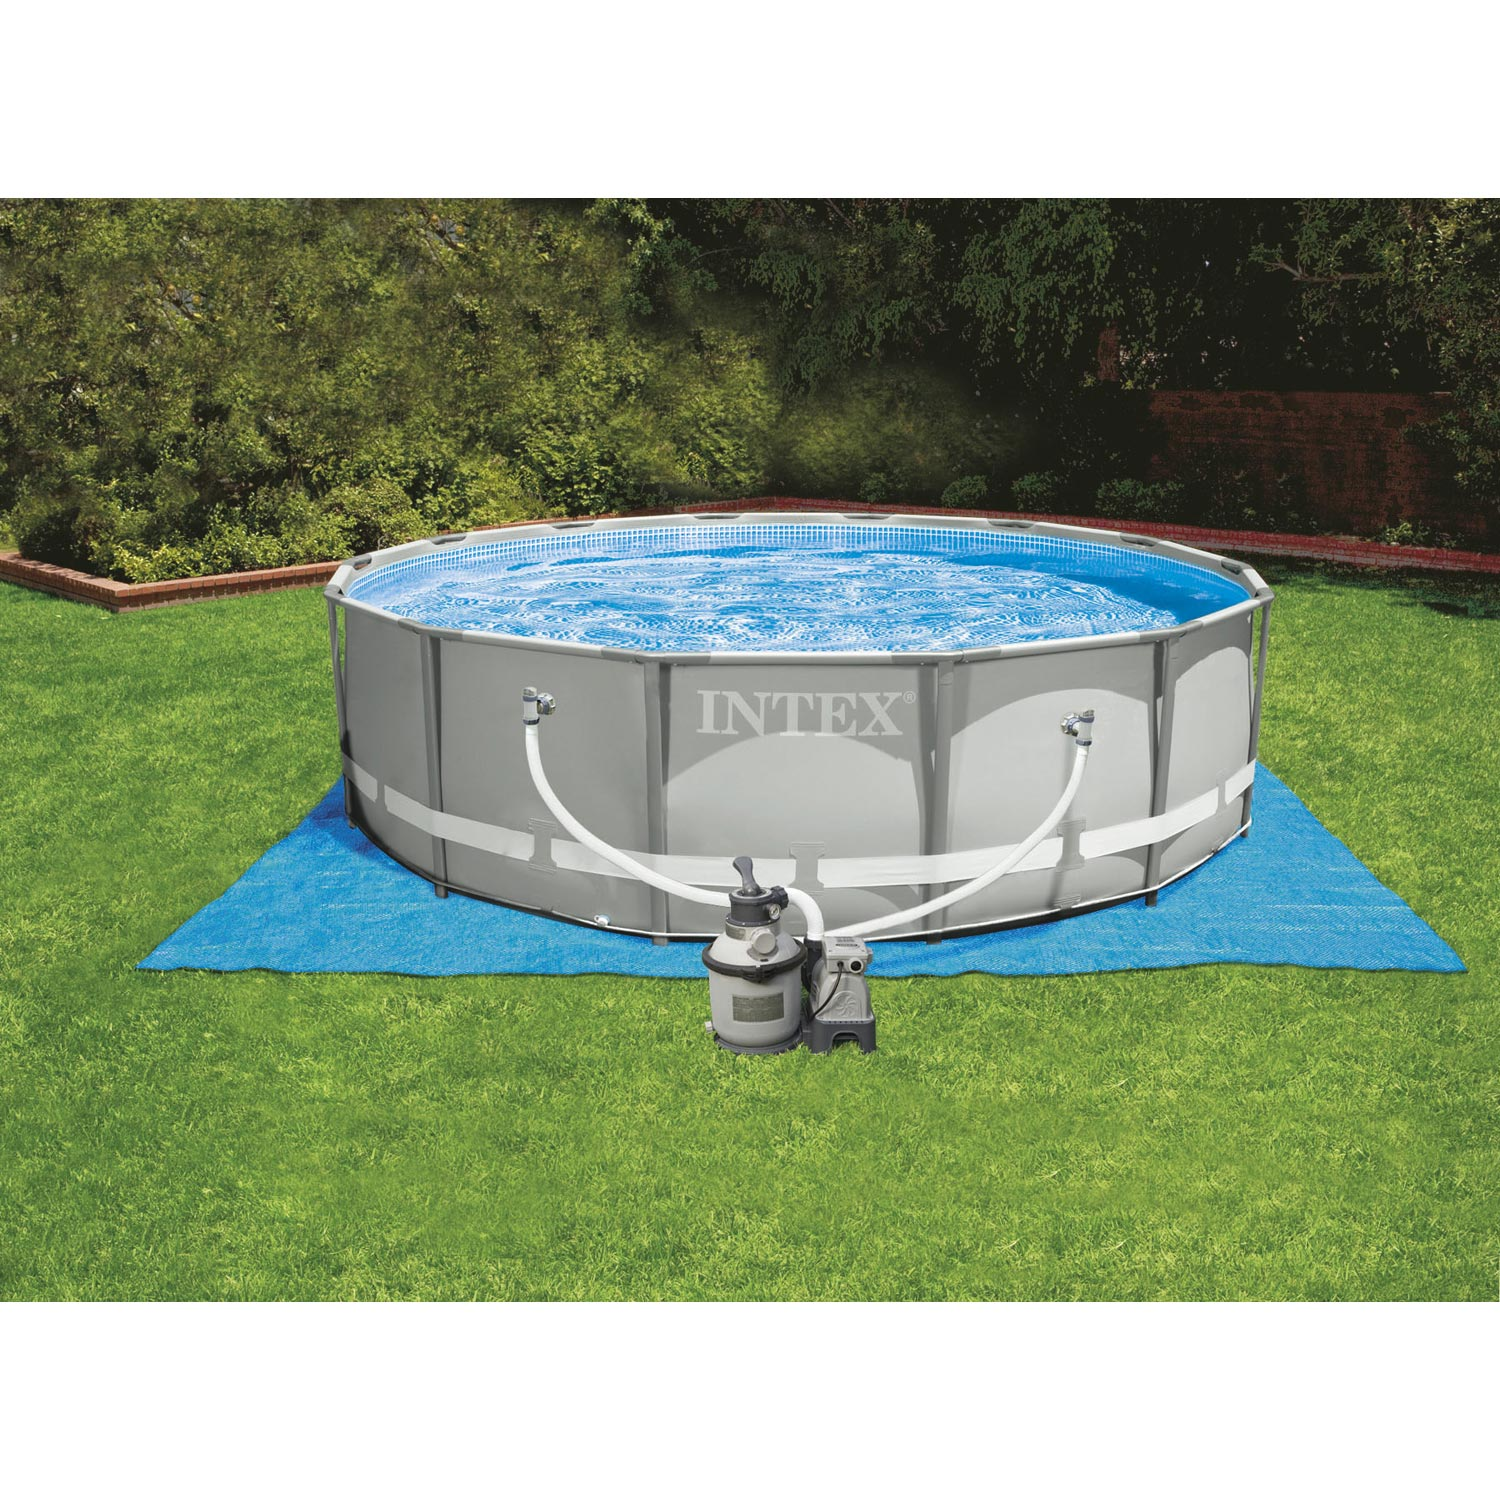 Piscine hors sol autoportante tubulaire ultraframe intex for Piscine hors sol imposable